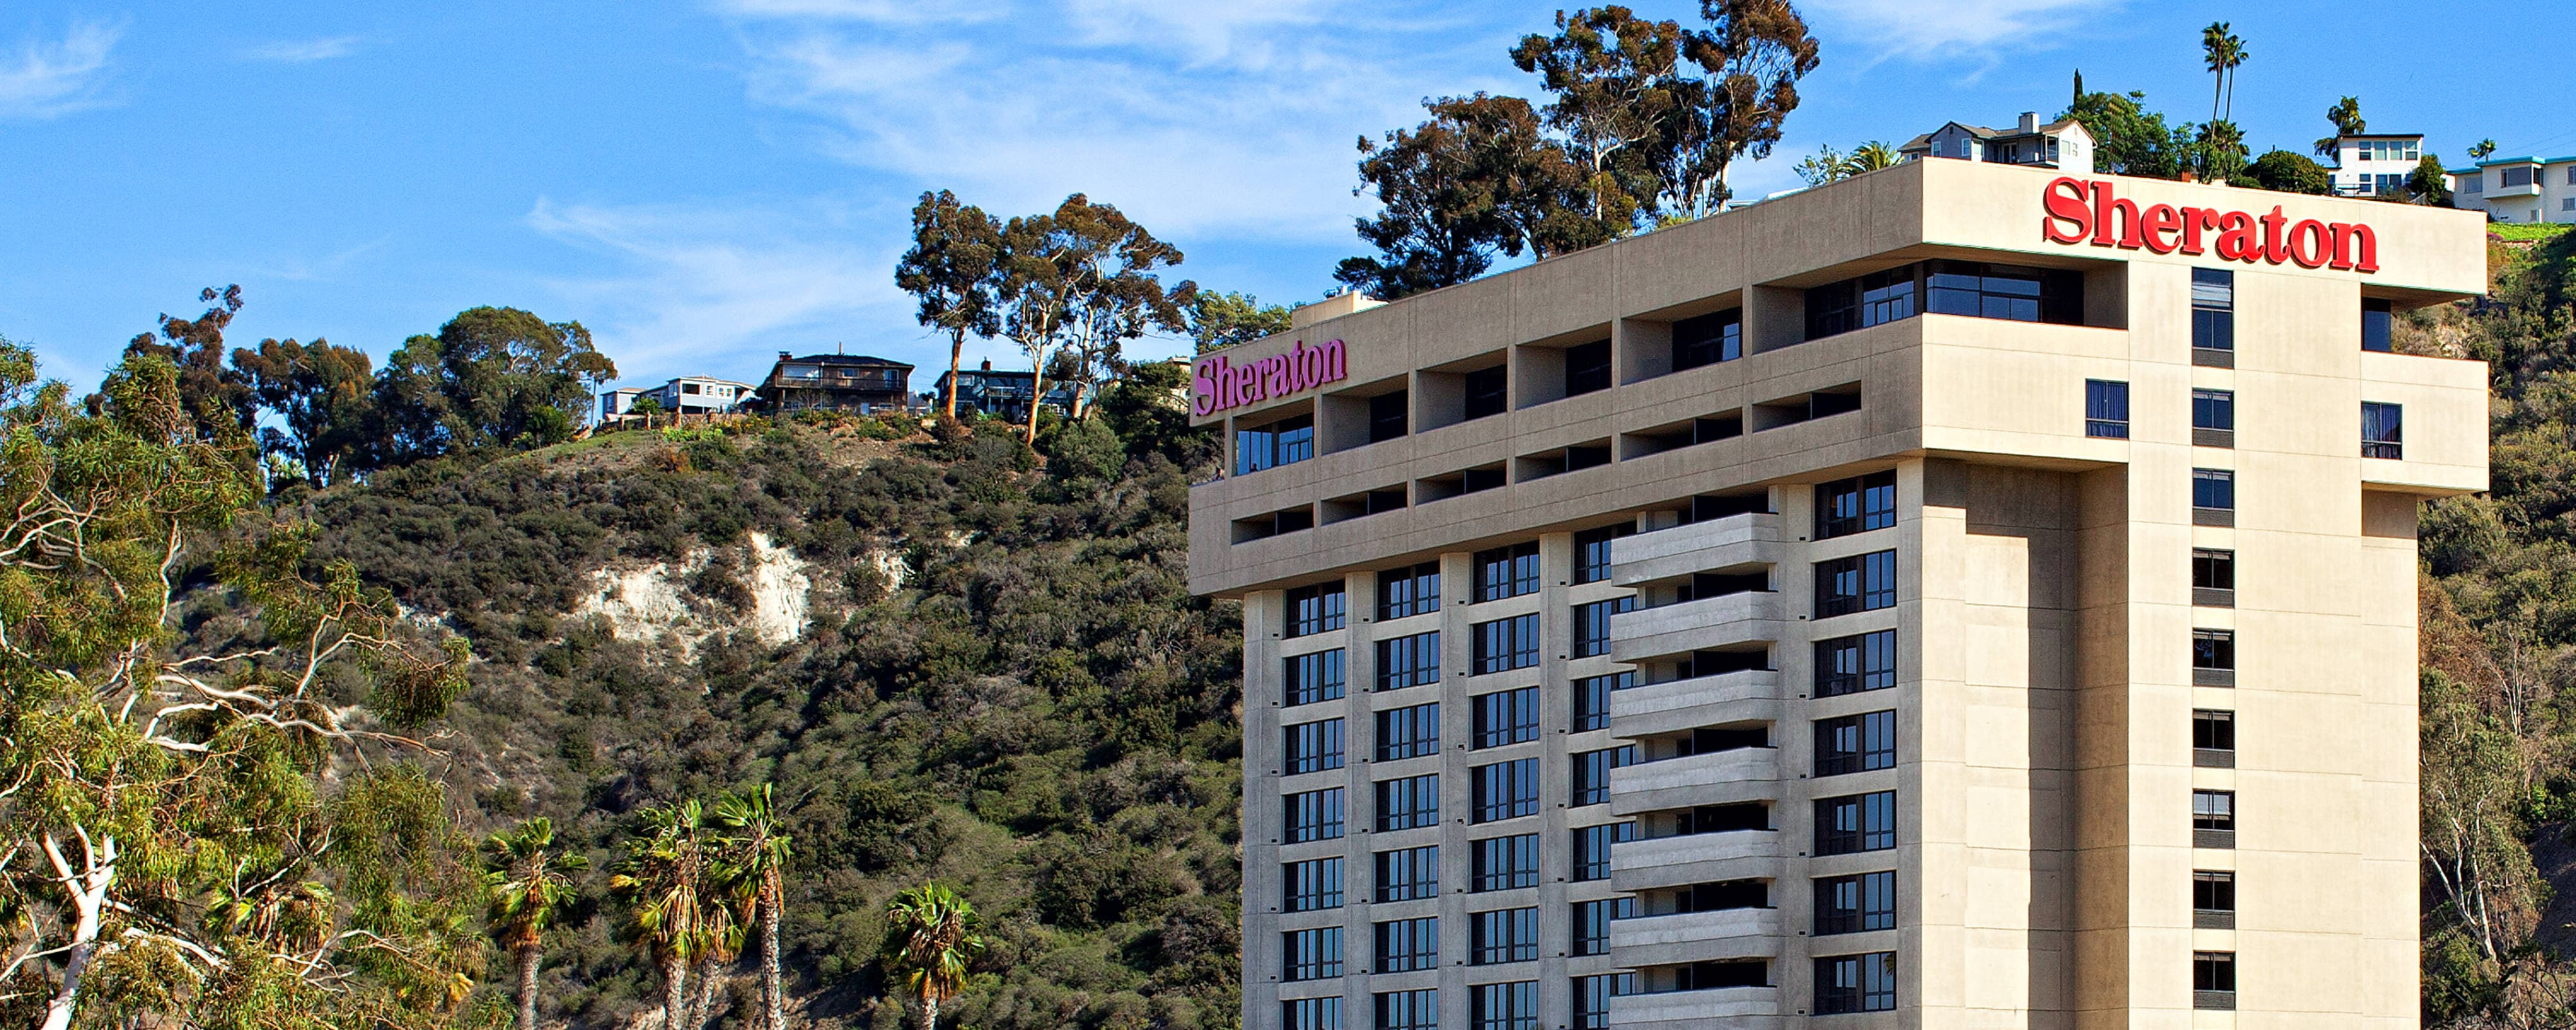 Hotels in San Diego Mission Valley | Sheraton Mission Valley